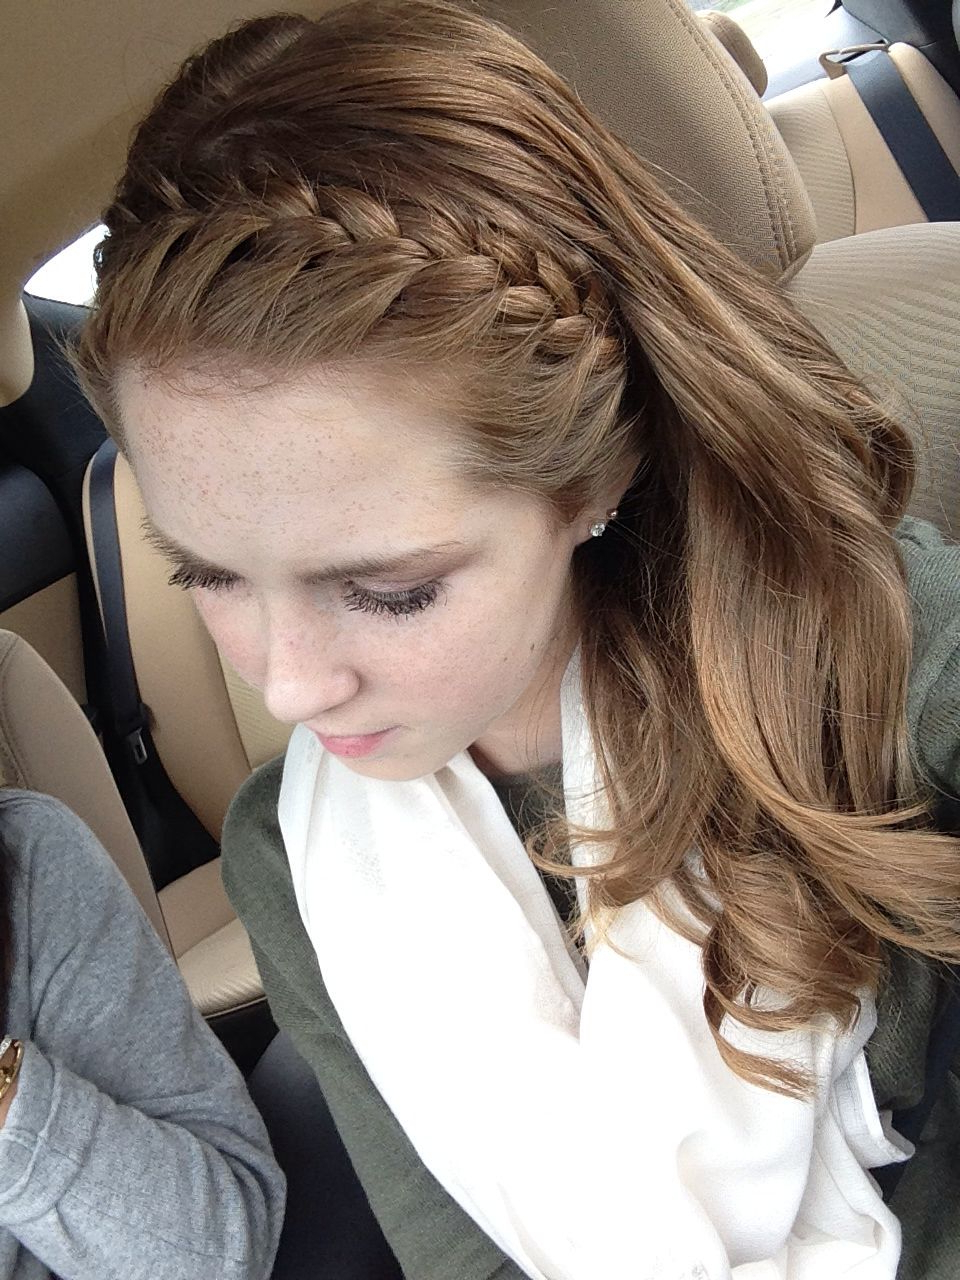 2020 Loose 4 Strand Rope Braid Hairstyles With Headband Braid With Loose Curls (View 8 of 20)